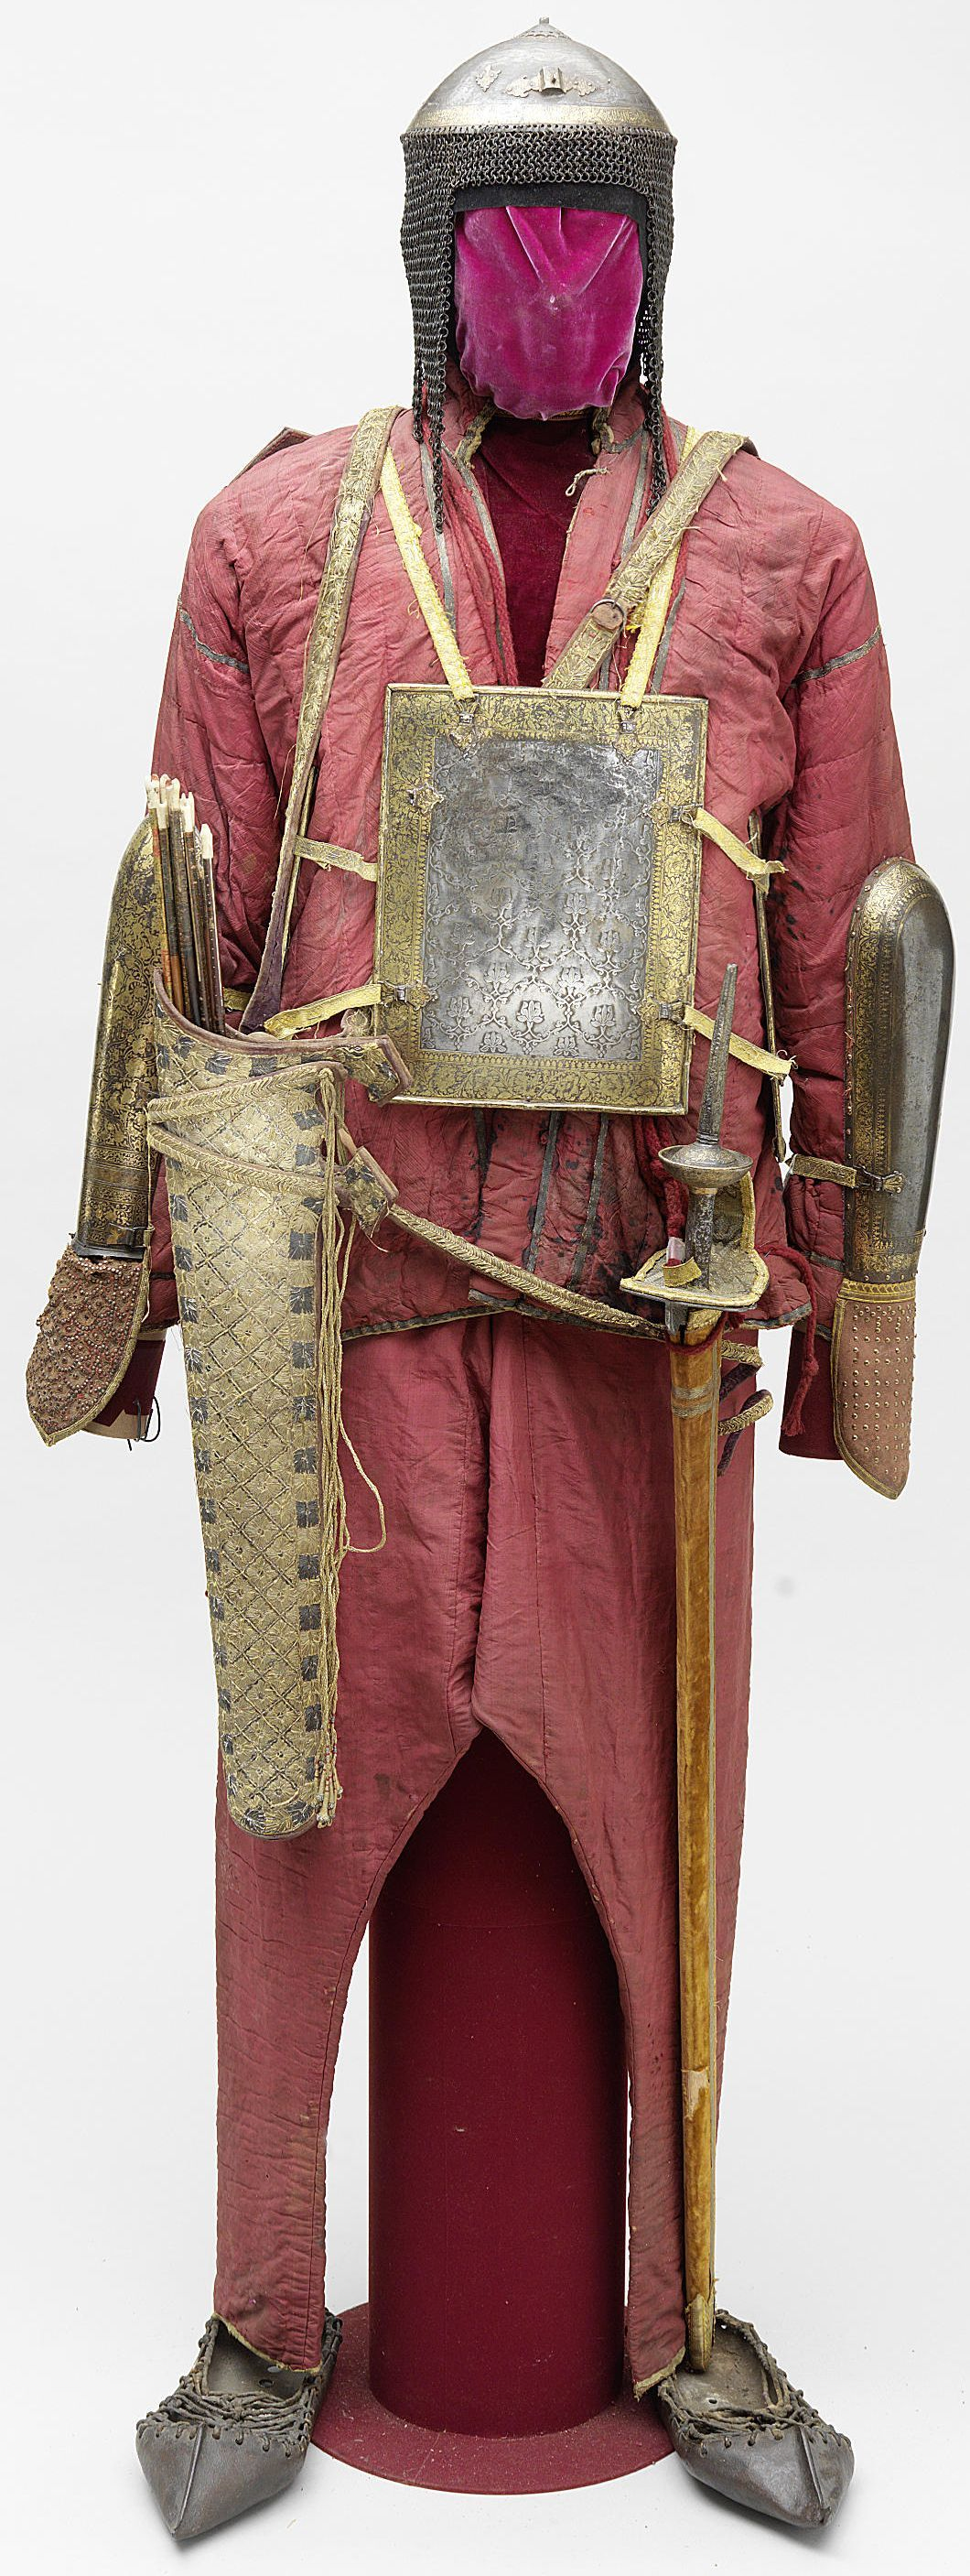 Indian khula-khud (helmet), char-aina (chahar-aina, chahar a'ineh), literally the four mirrors, chest armor with four plates, dastanas/bazu band (vambrace/arm guards), silk padded mail armour jacket and trousers, cotton padding covering a layer of steel mail, the inside lining decorated with small floral sprays on a cream ground, a pair of steel slippers with leather attachments, firangi sword, cloth quiver with arrows, jacket 74 cm. long, trousers 100 cm. long, end of the 18th century.